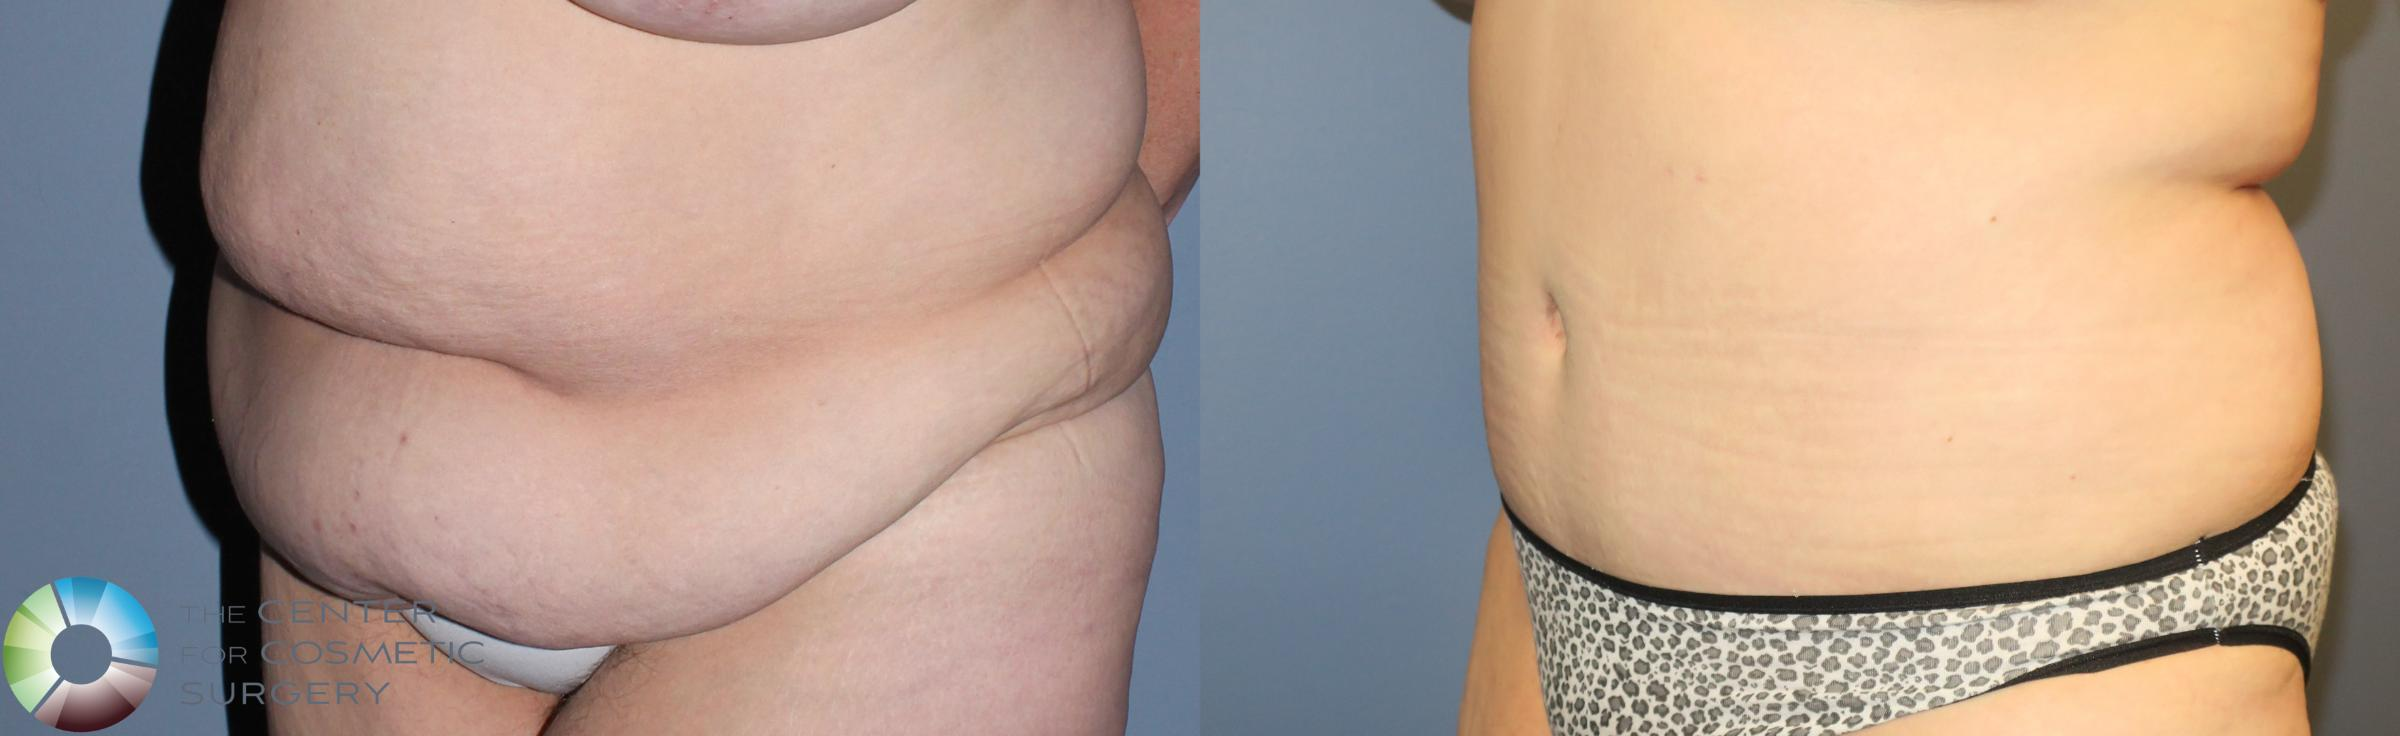 Tummy Tuck Case 780 Before & After View #1 | Golden, CO | The Center for Cosmetic Surgery